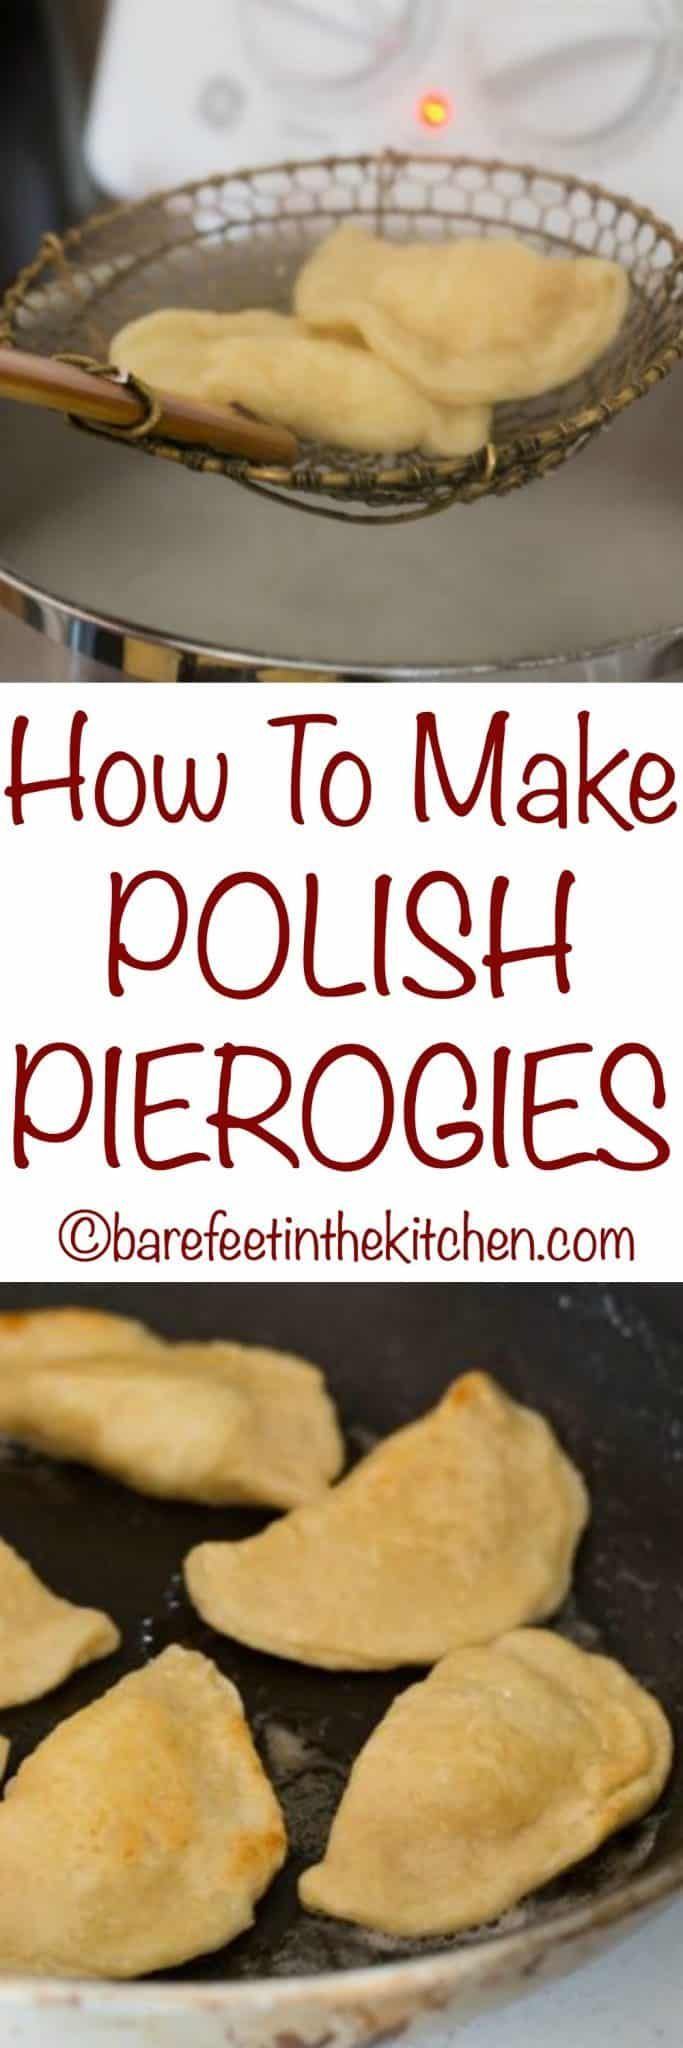 Pierogi: Step-By-Step Recipe with Photographs | Barefeet In The Kitchen